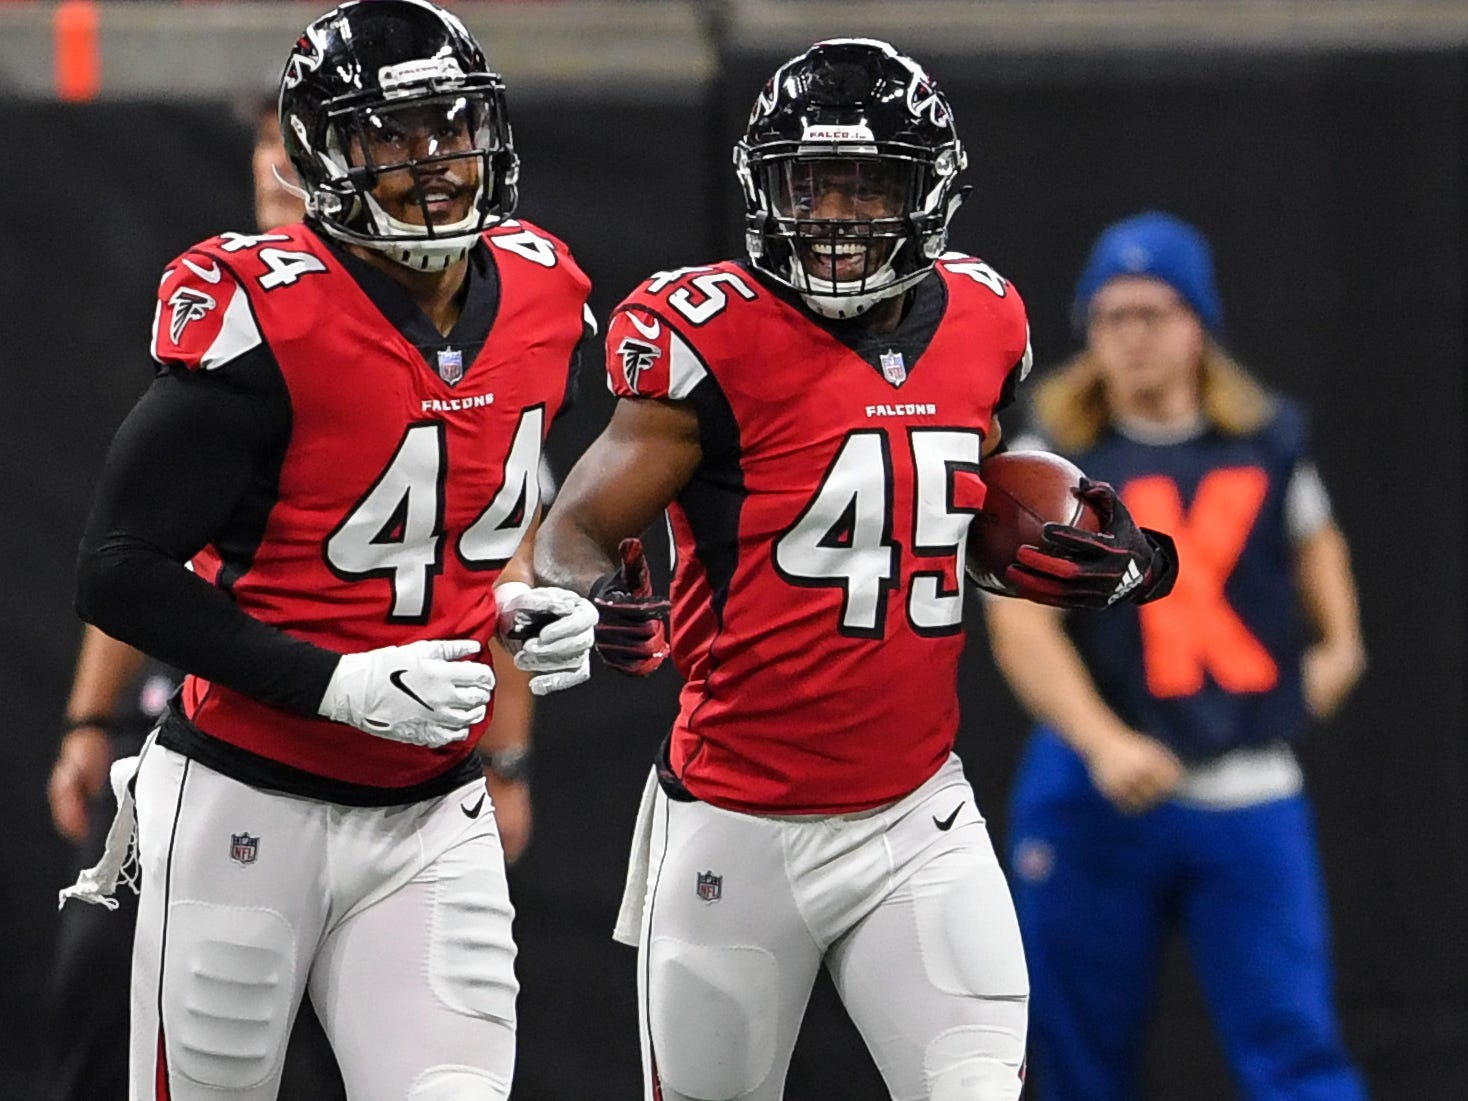 Dec 16, 2018; Atlanta, GA, USA; Atlanta Falcons linebacker Deion Jones (45) reacts after returning an interception for a touchdown against the Arizona Cardinals during the first quarter at Mercedes-Benz Stadium.